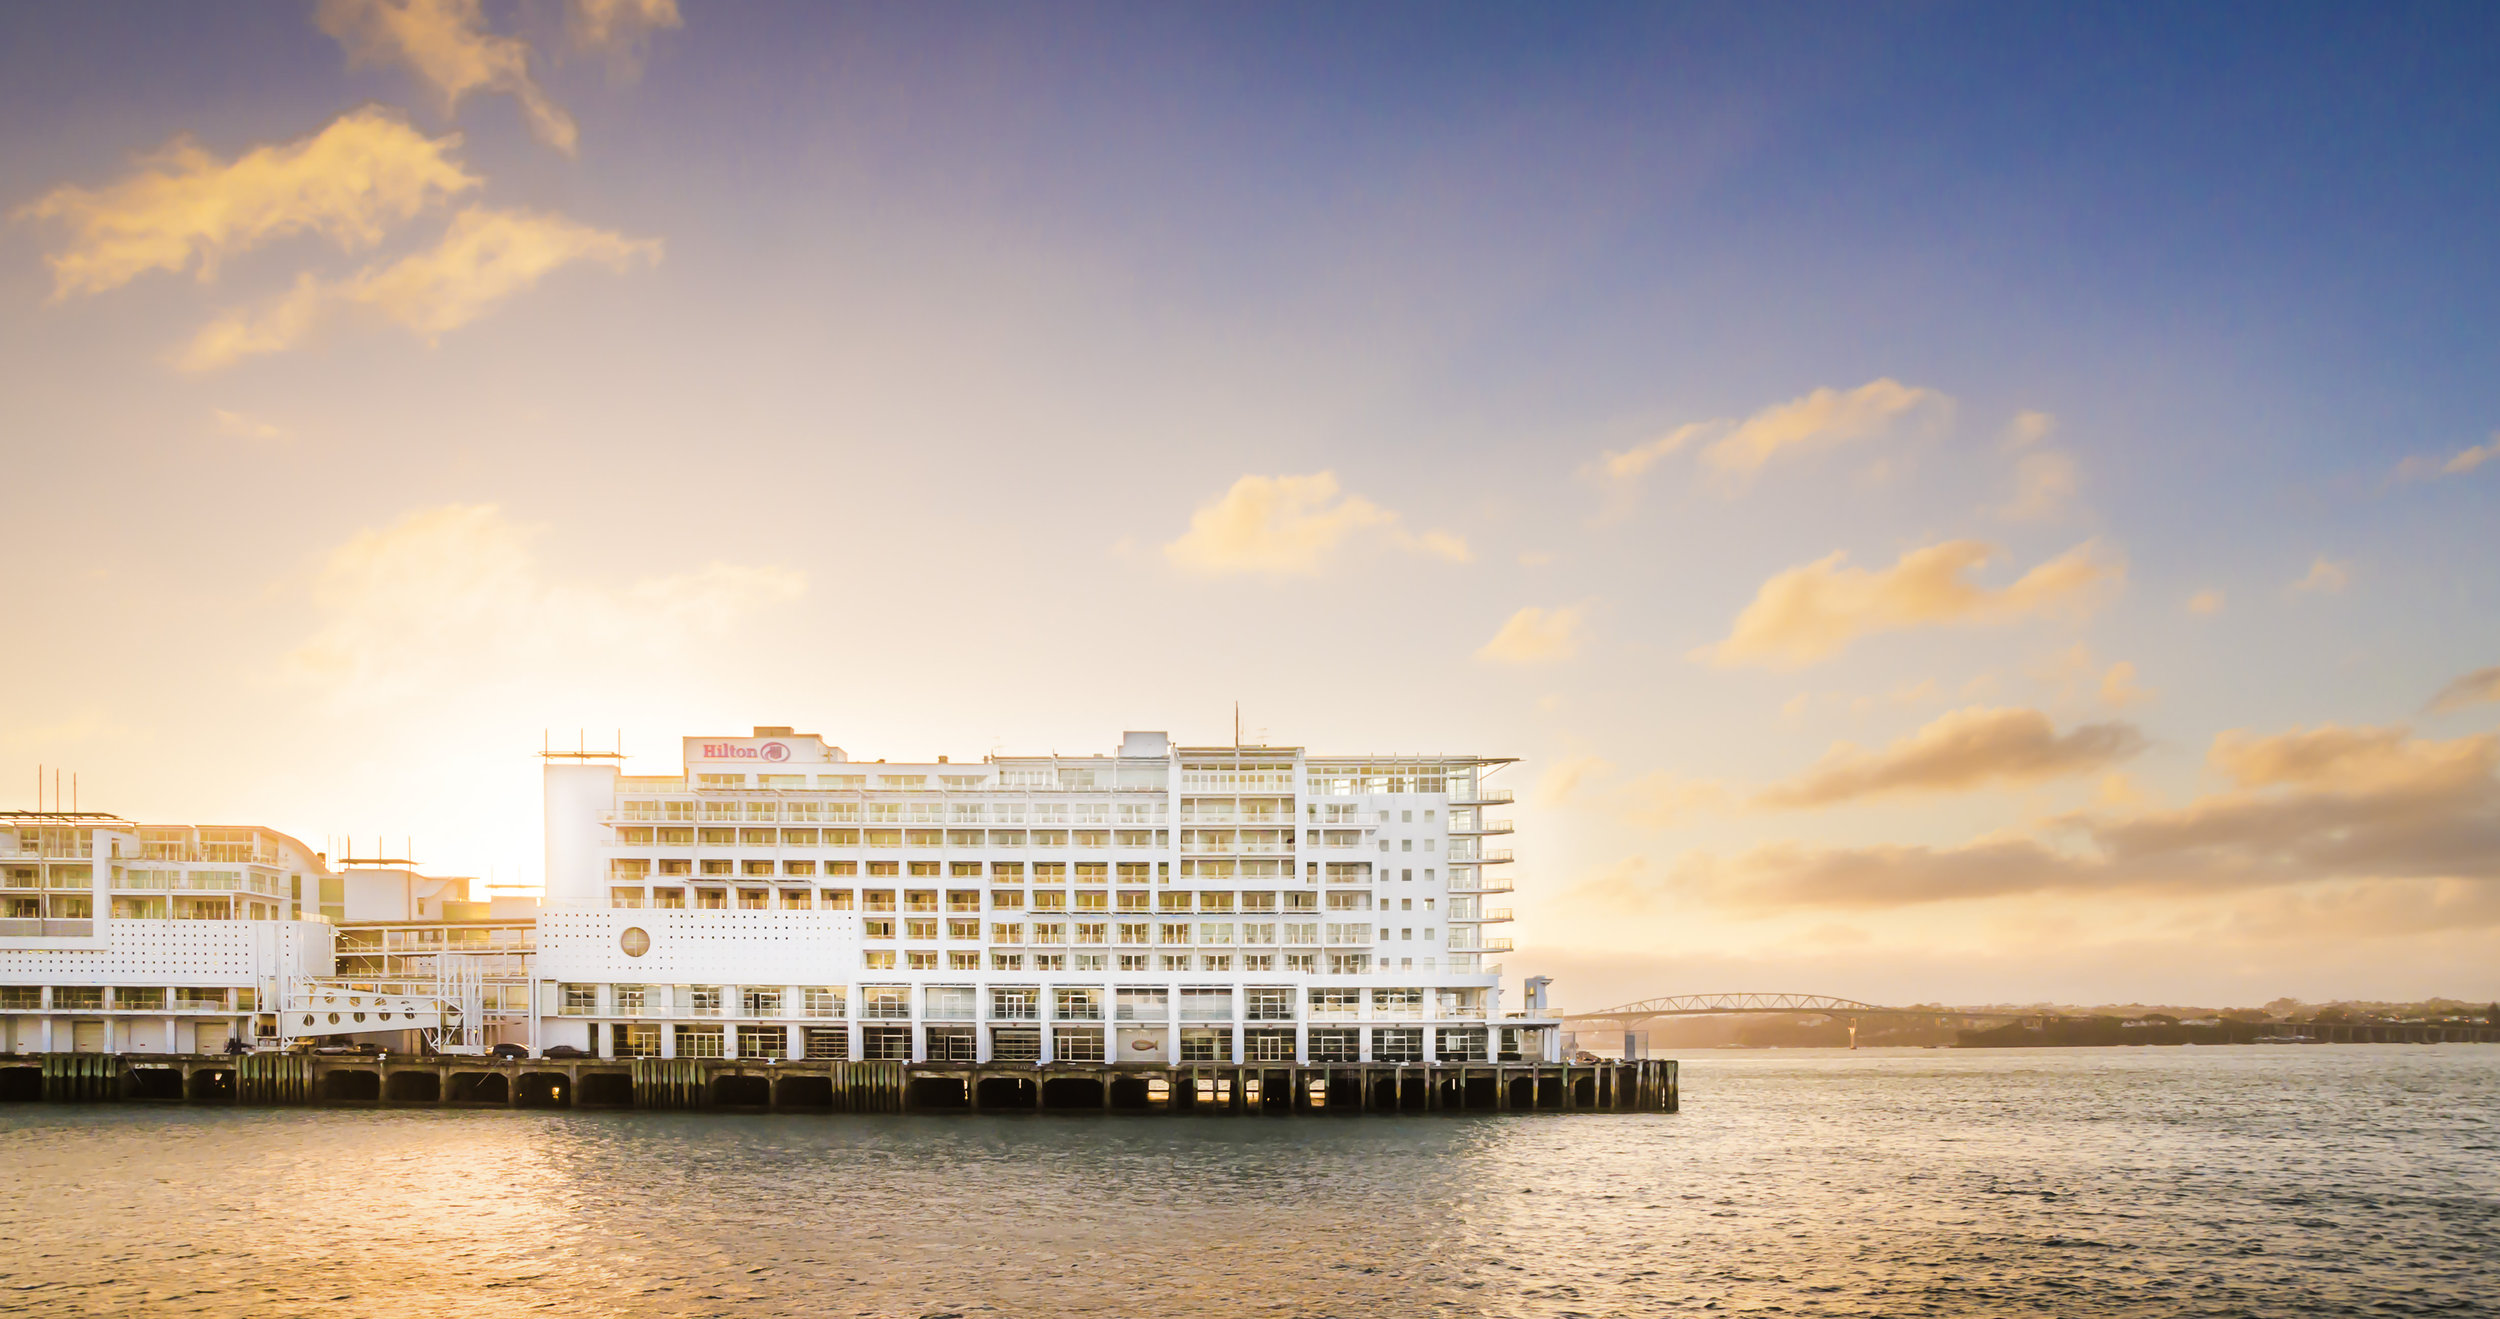 Hilton Auckland - Sitting on a wharf in Auckland Harbour, close to Restaurants and bars, Hilton Auckland has sweeping views almost from every corner. Also, don't miss their High Tea and Mixology classes in the Bellini Bar.